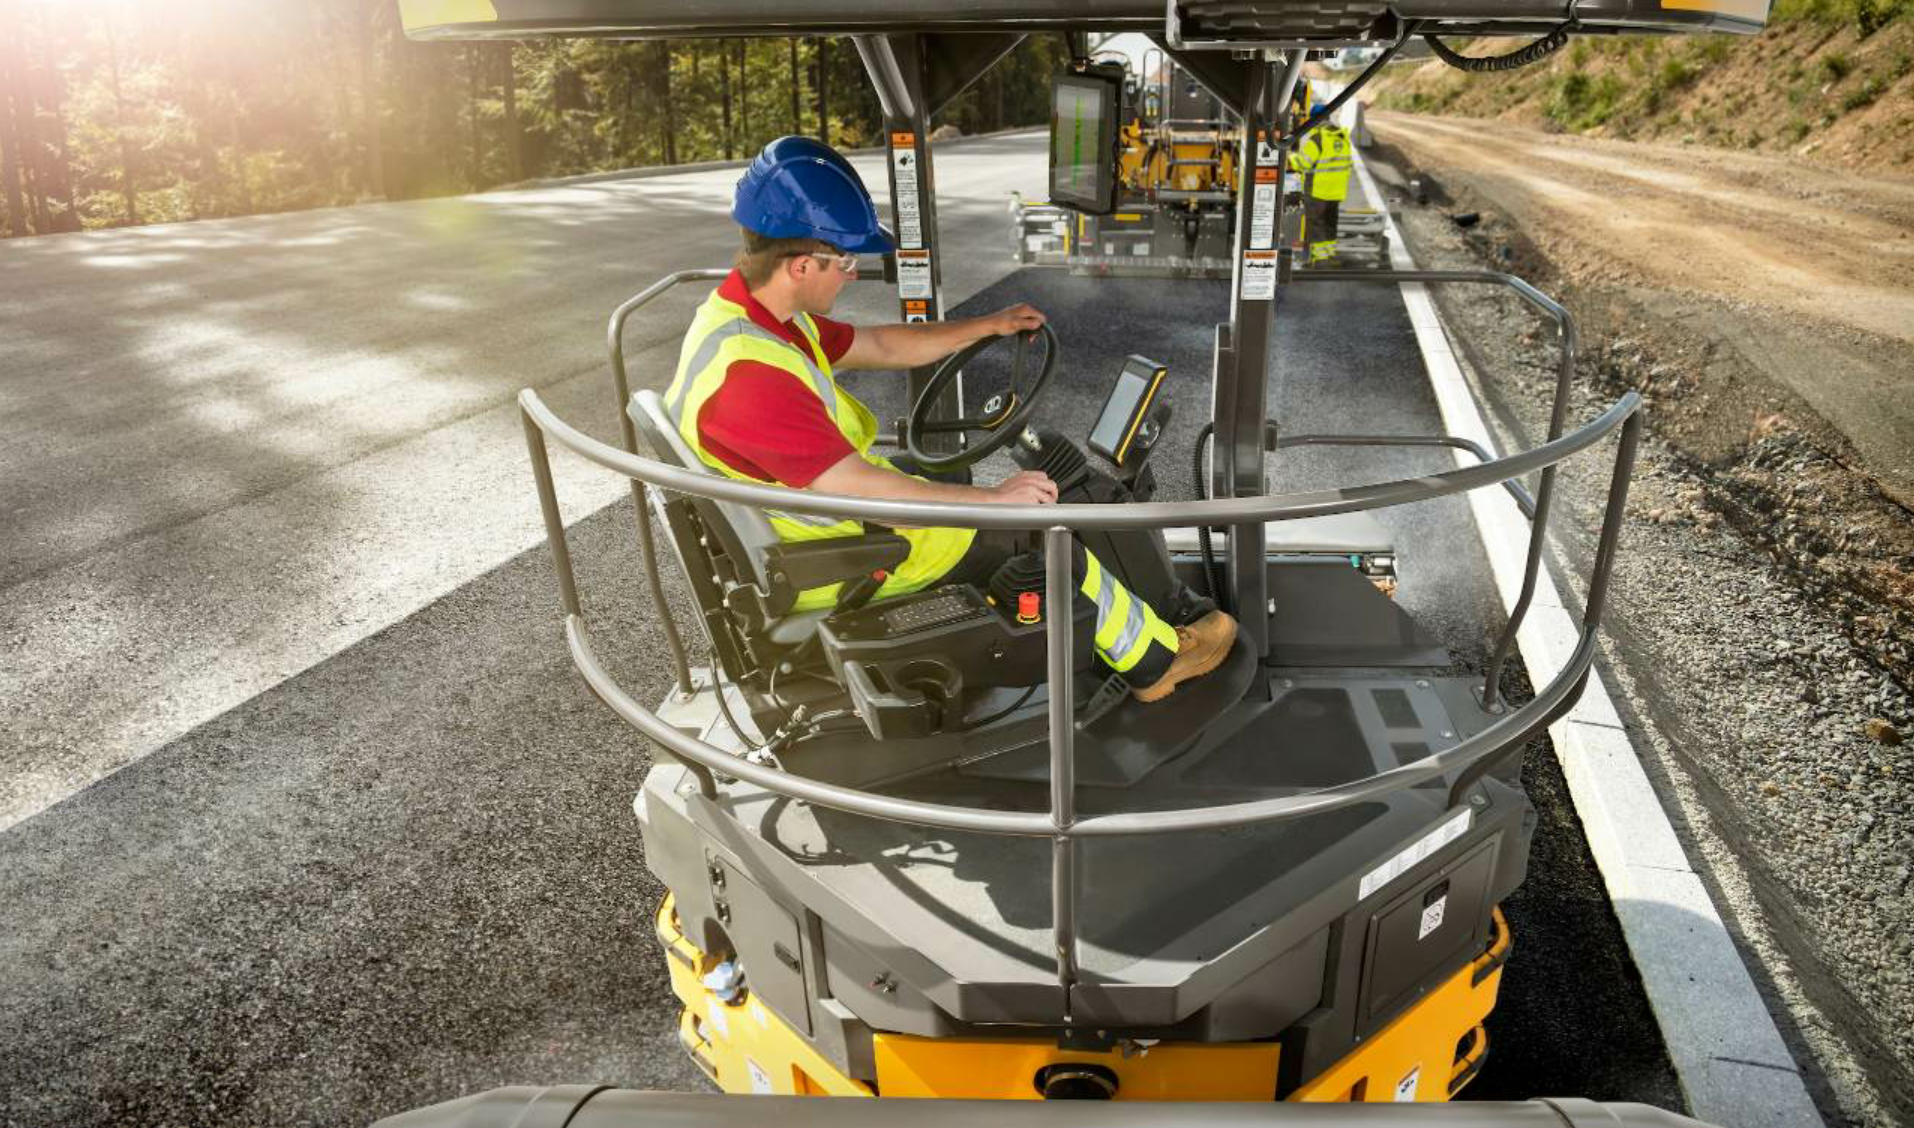 The QC tech and roller operators will determine the rolling pattern before the job starts. The intelligent compaction (IC) system helps the operator track his passes. Depending on the system, it may offer a reading or level of mat stiffness under the drums or other way to assess compaction. Photo courtesy Volvo Construction Equipment, Shippensburg, Pennsylvania.